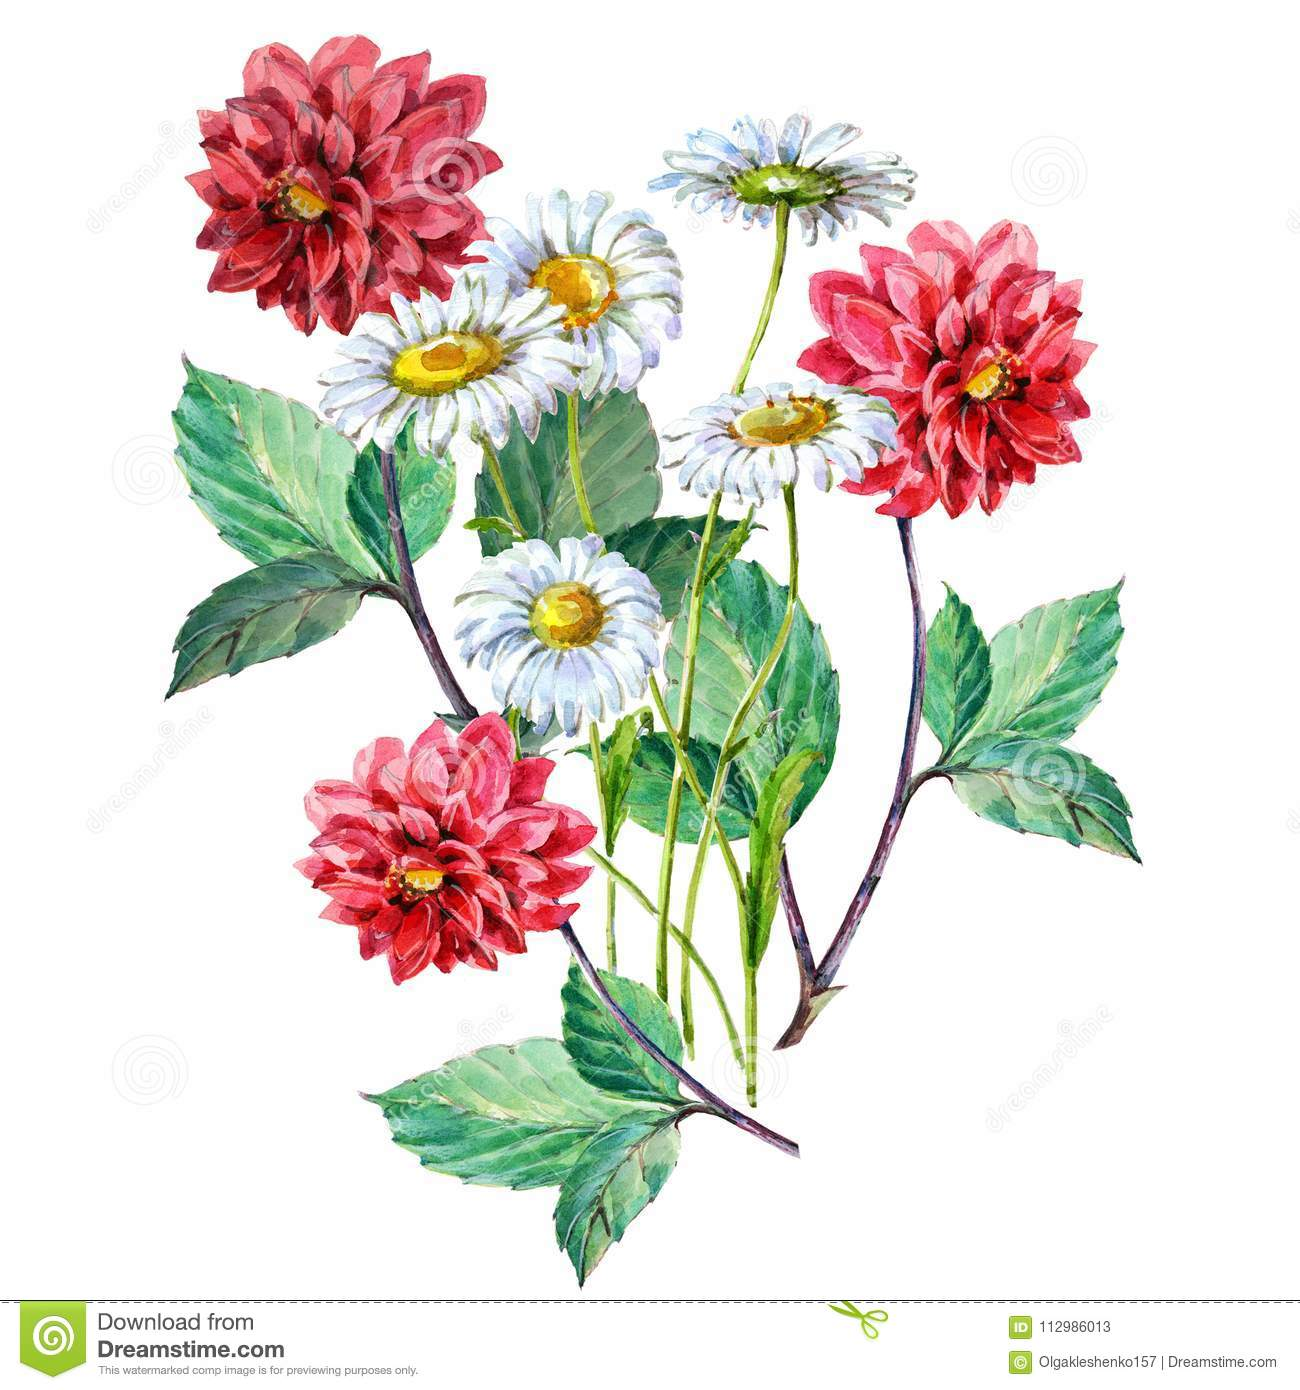 Bouquet Red Dahlia and White Chamomiles of Watercolor. Floral Illustration.